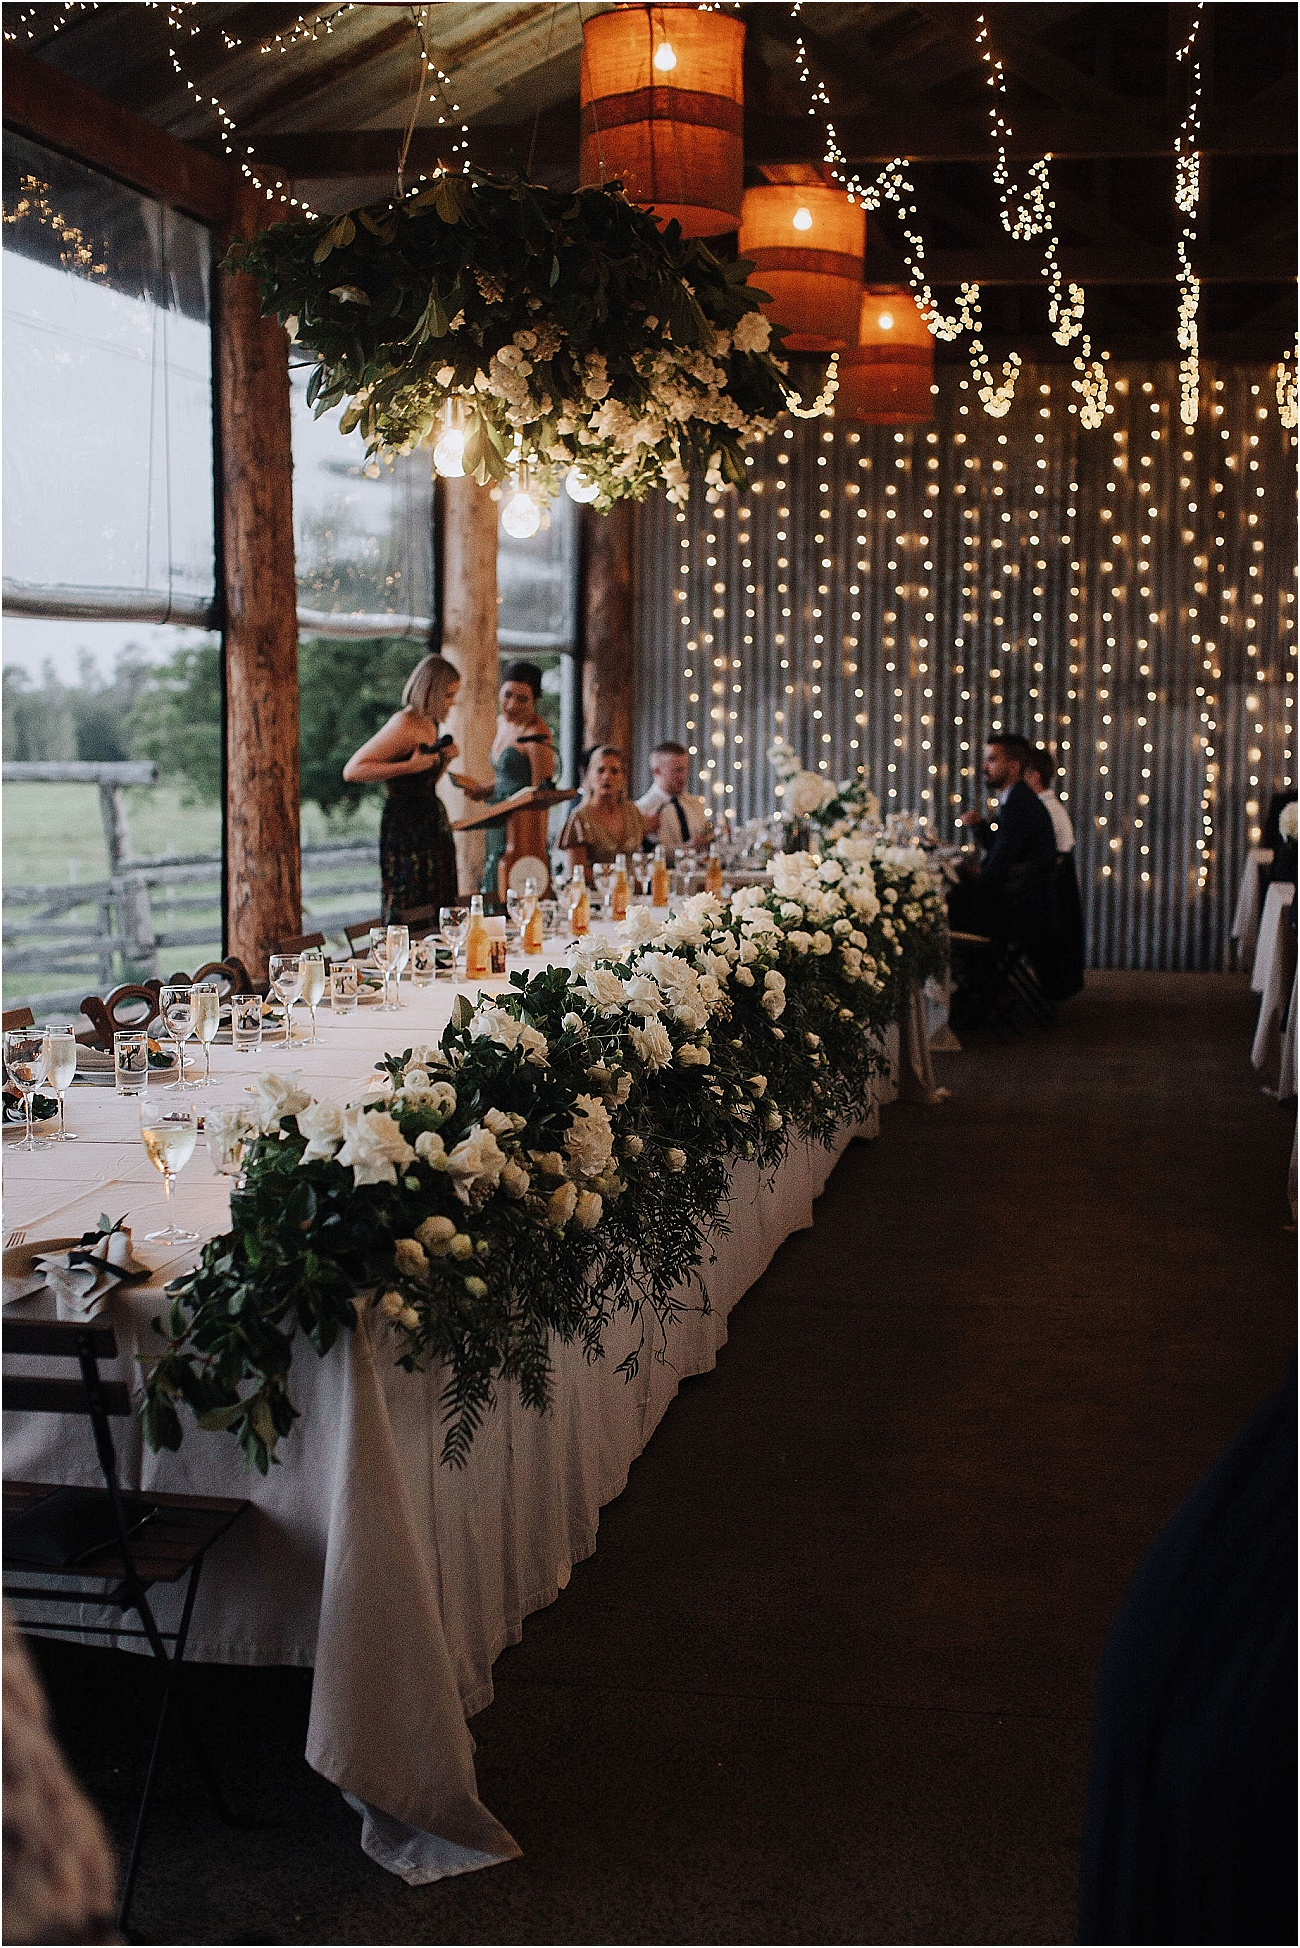 Lush Bridal table garland featuring white blooms and foliage